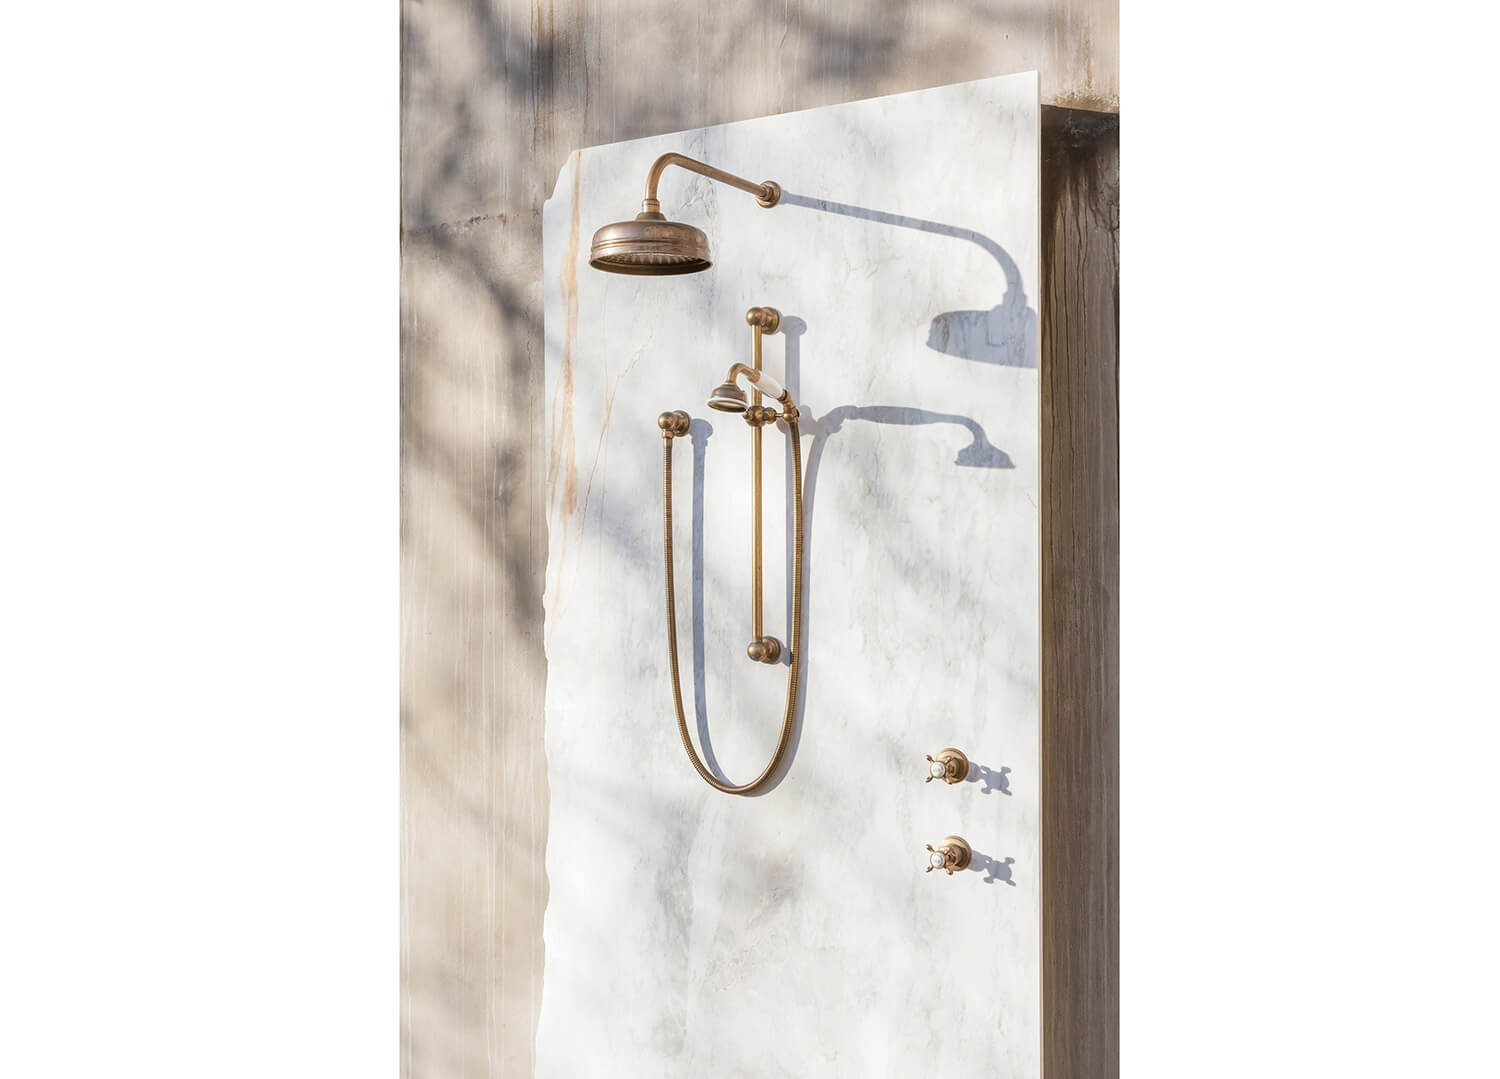 est living design directory outdoor shower set english tapware collection.01